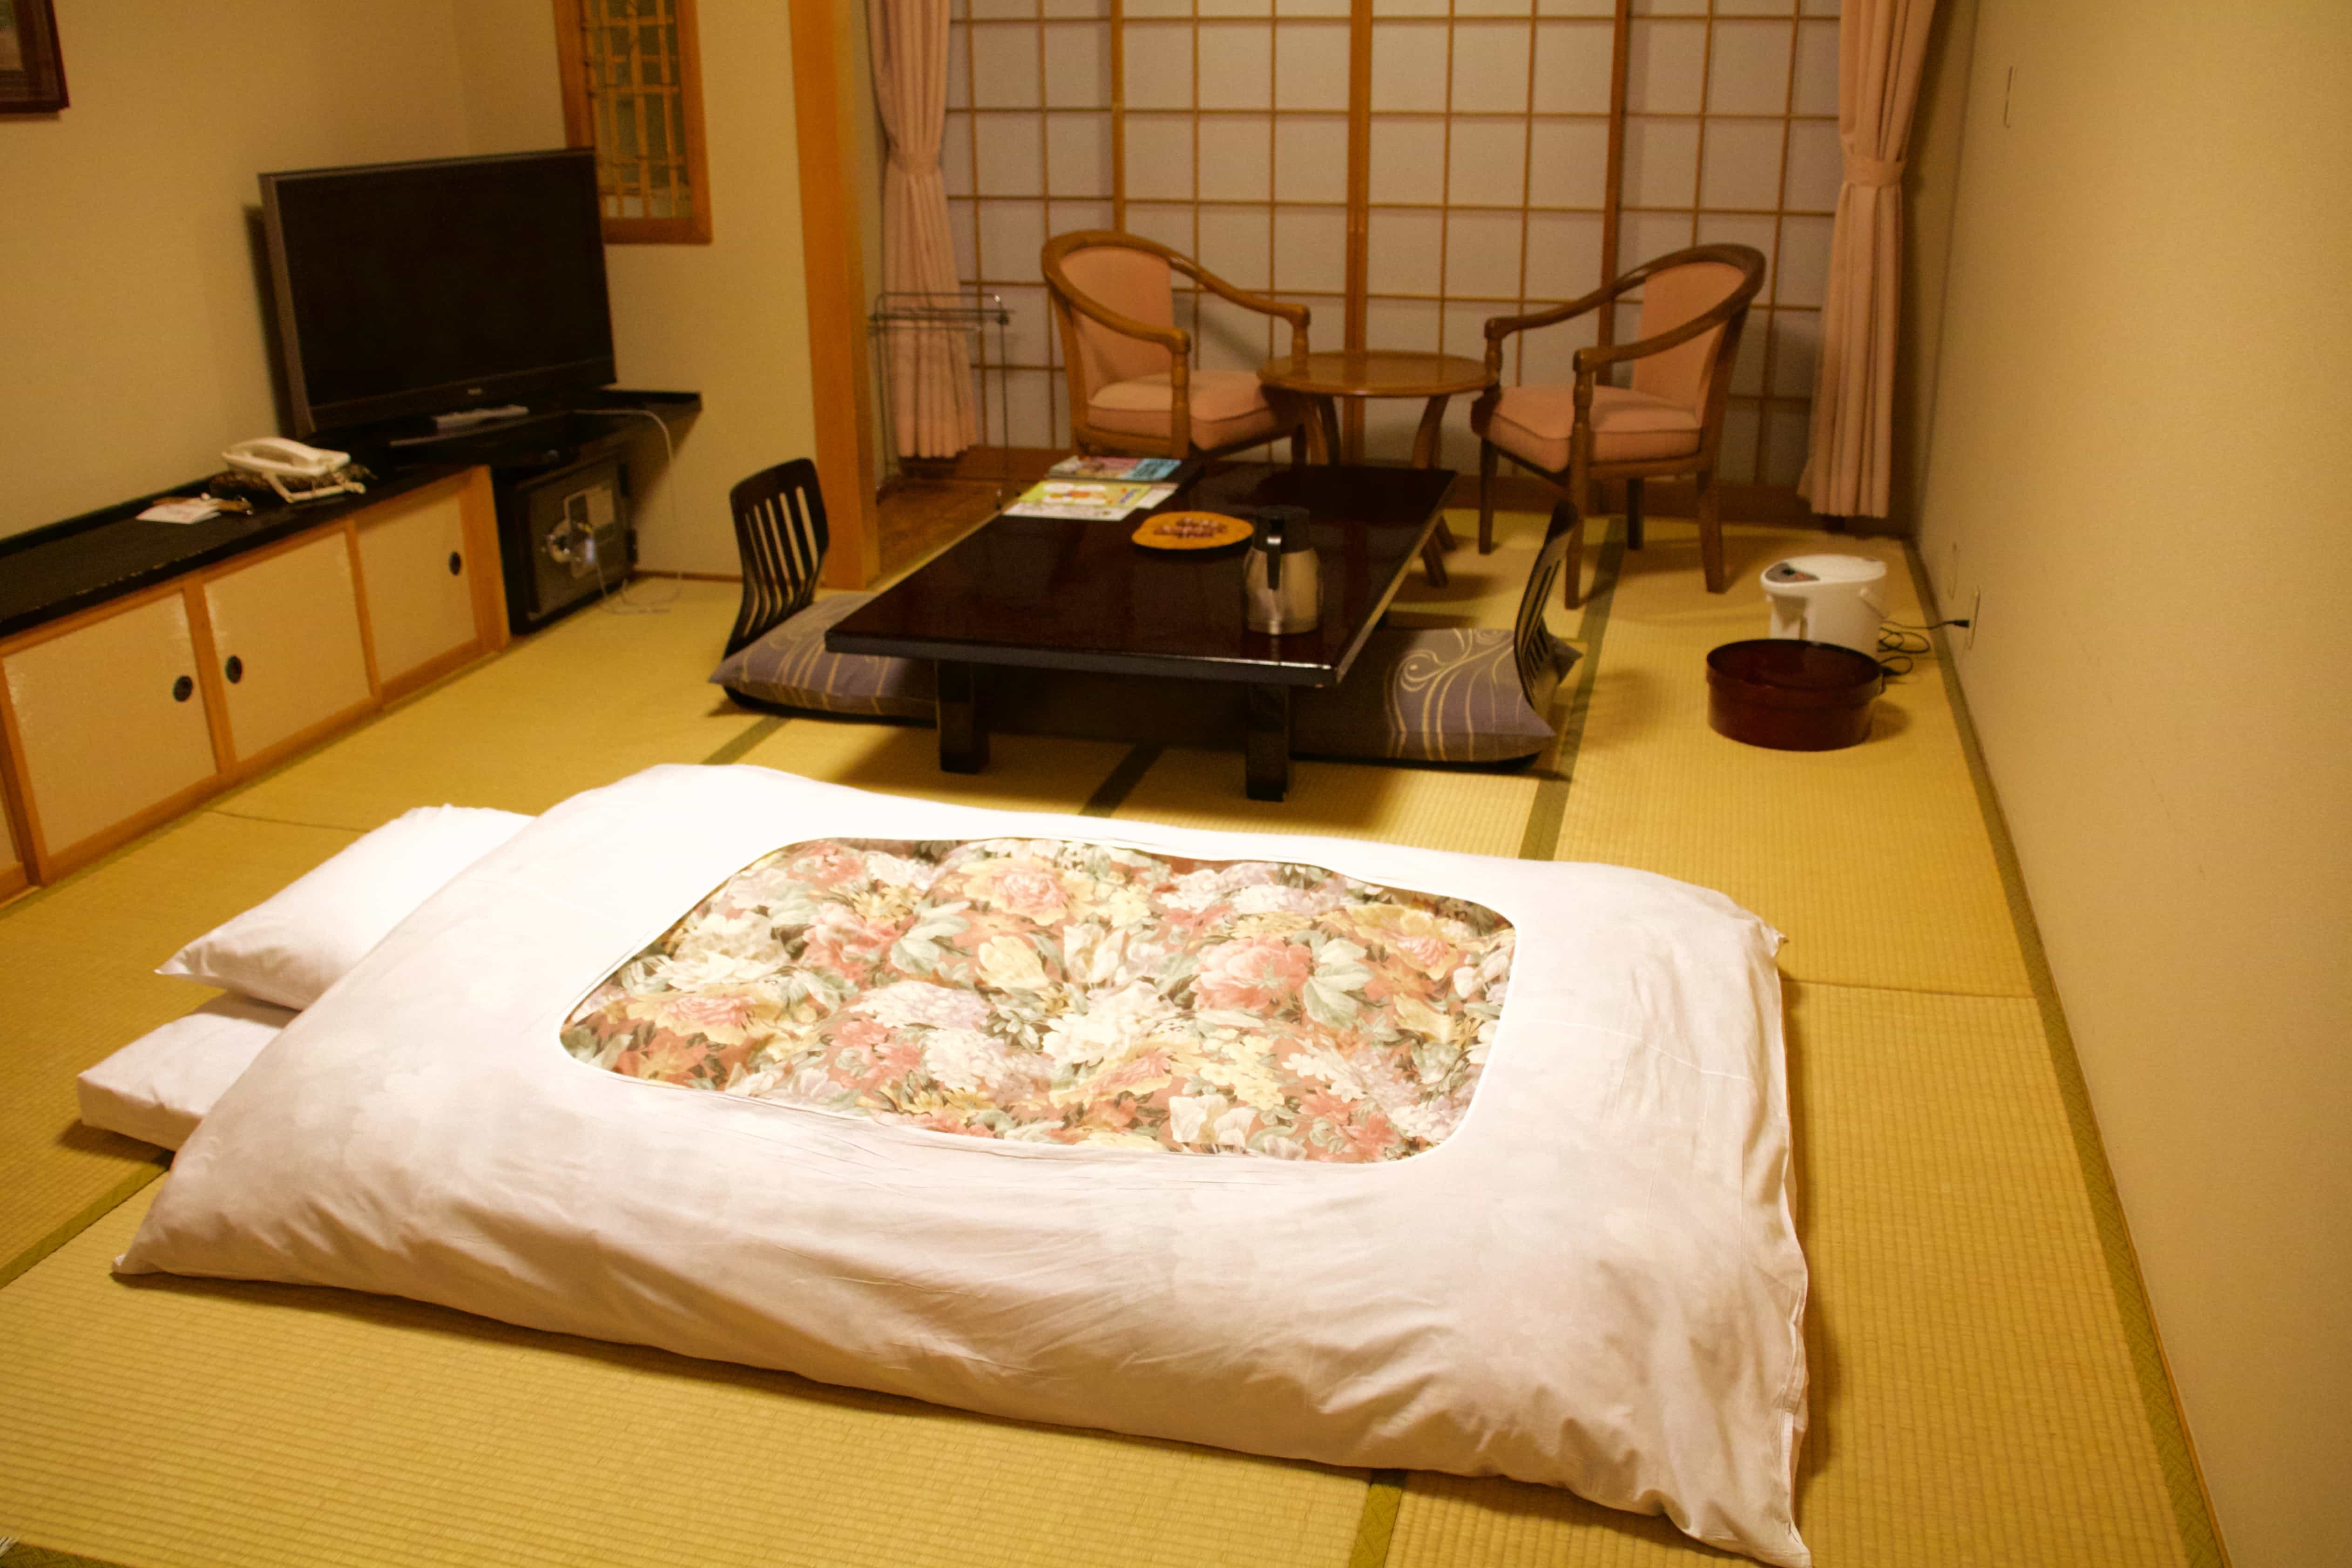 For sophistication of the finest, stay at Ryokan Biyu to experience traditional Japanese culture and hospitality. There is no better place in Japan! Read more at www.thefivefoottraveler.com